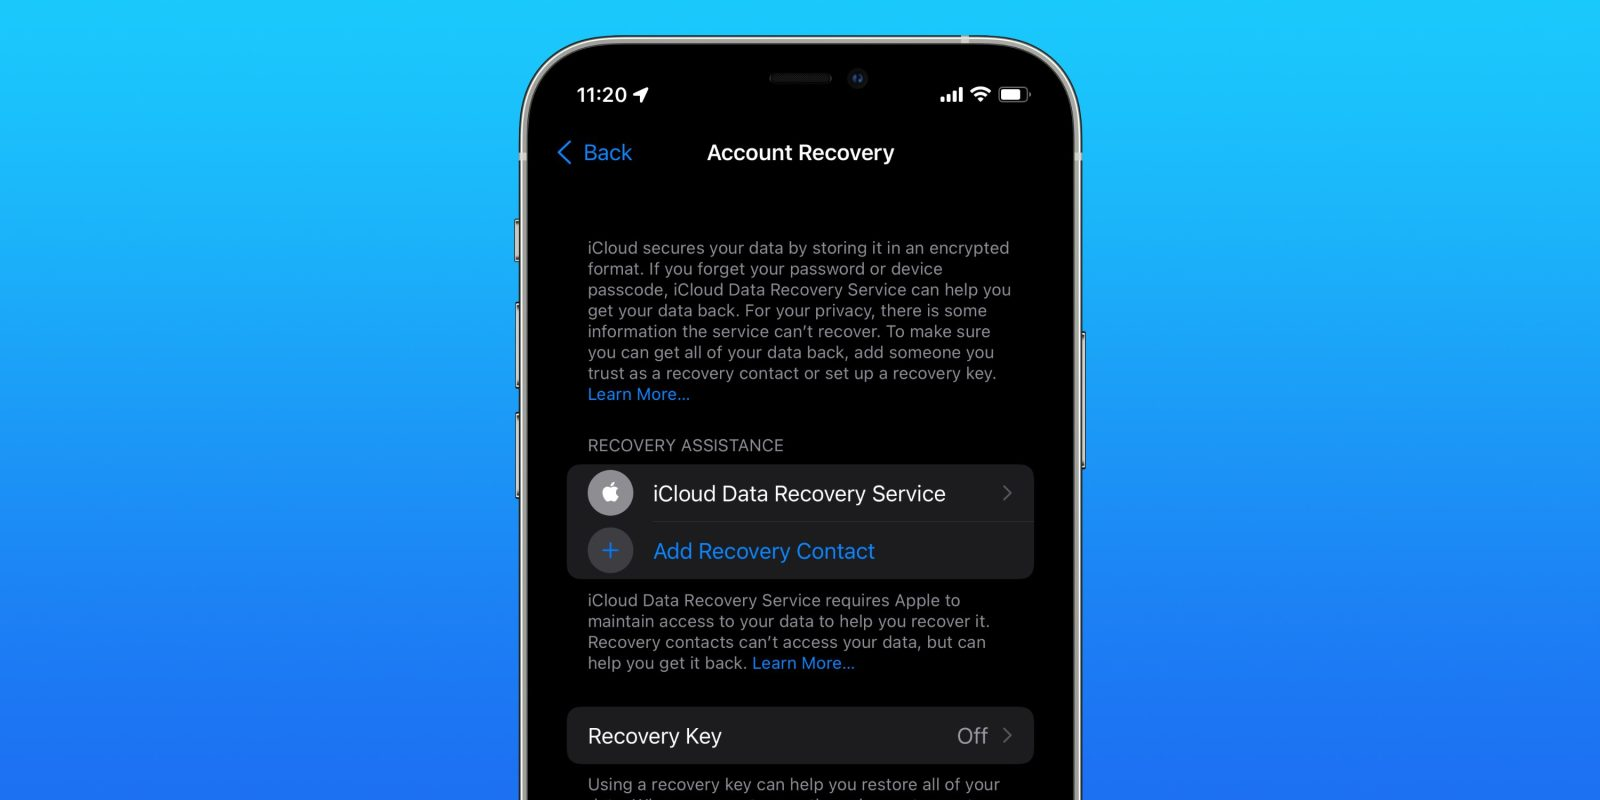 iOS 15 lets you set new iCloud recovery options, here's how